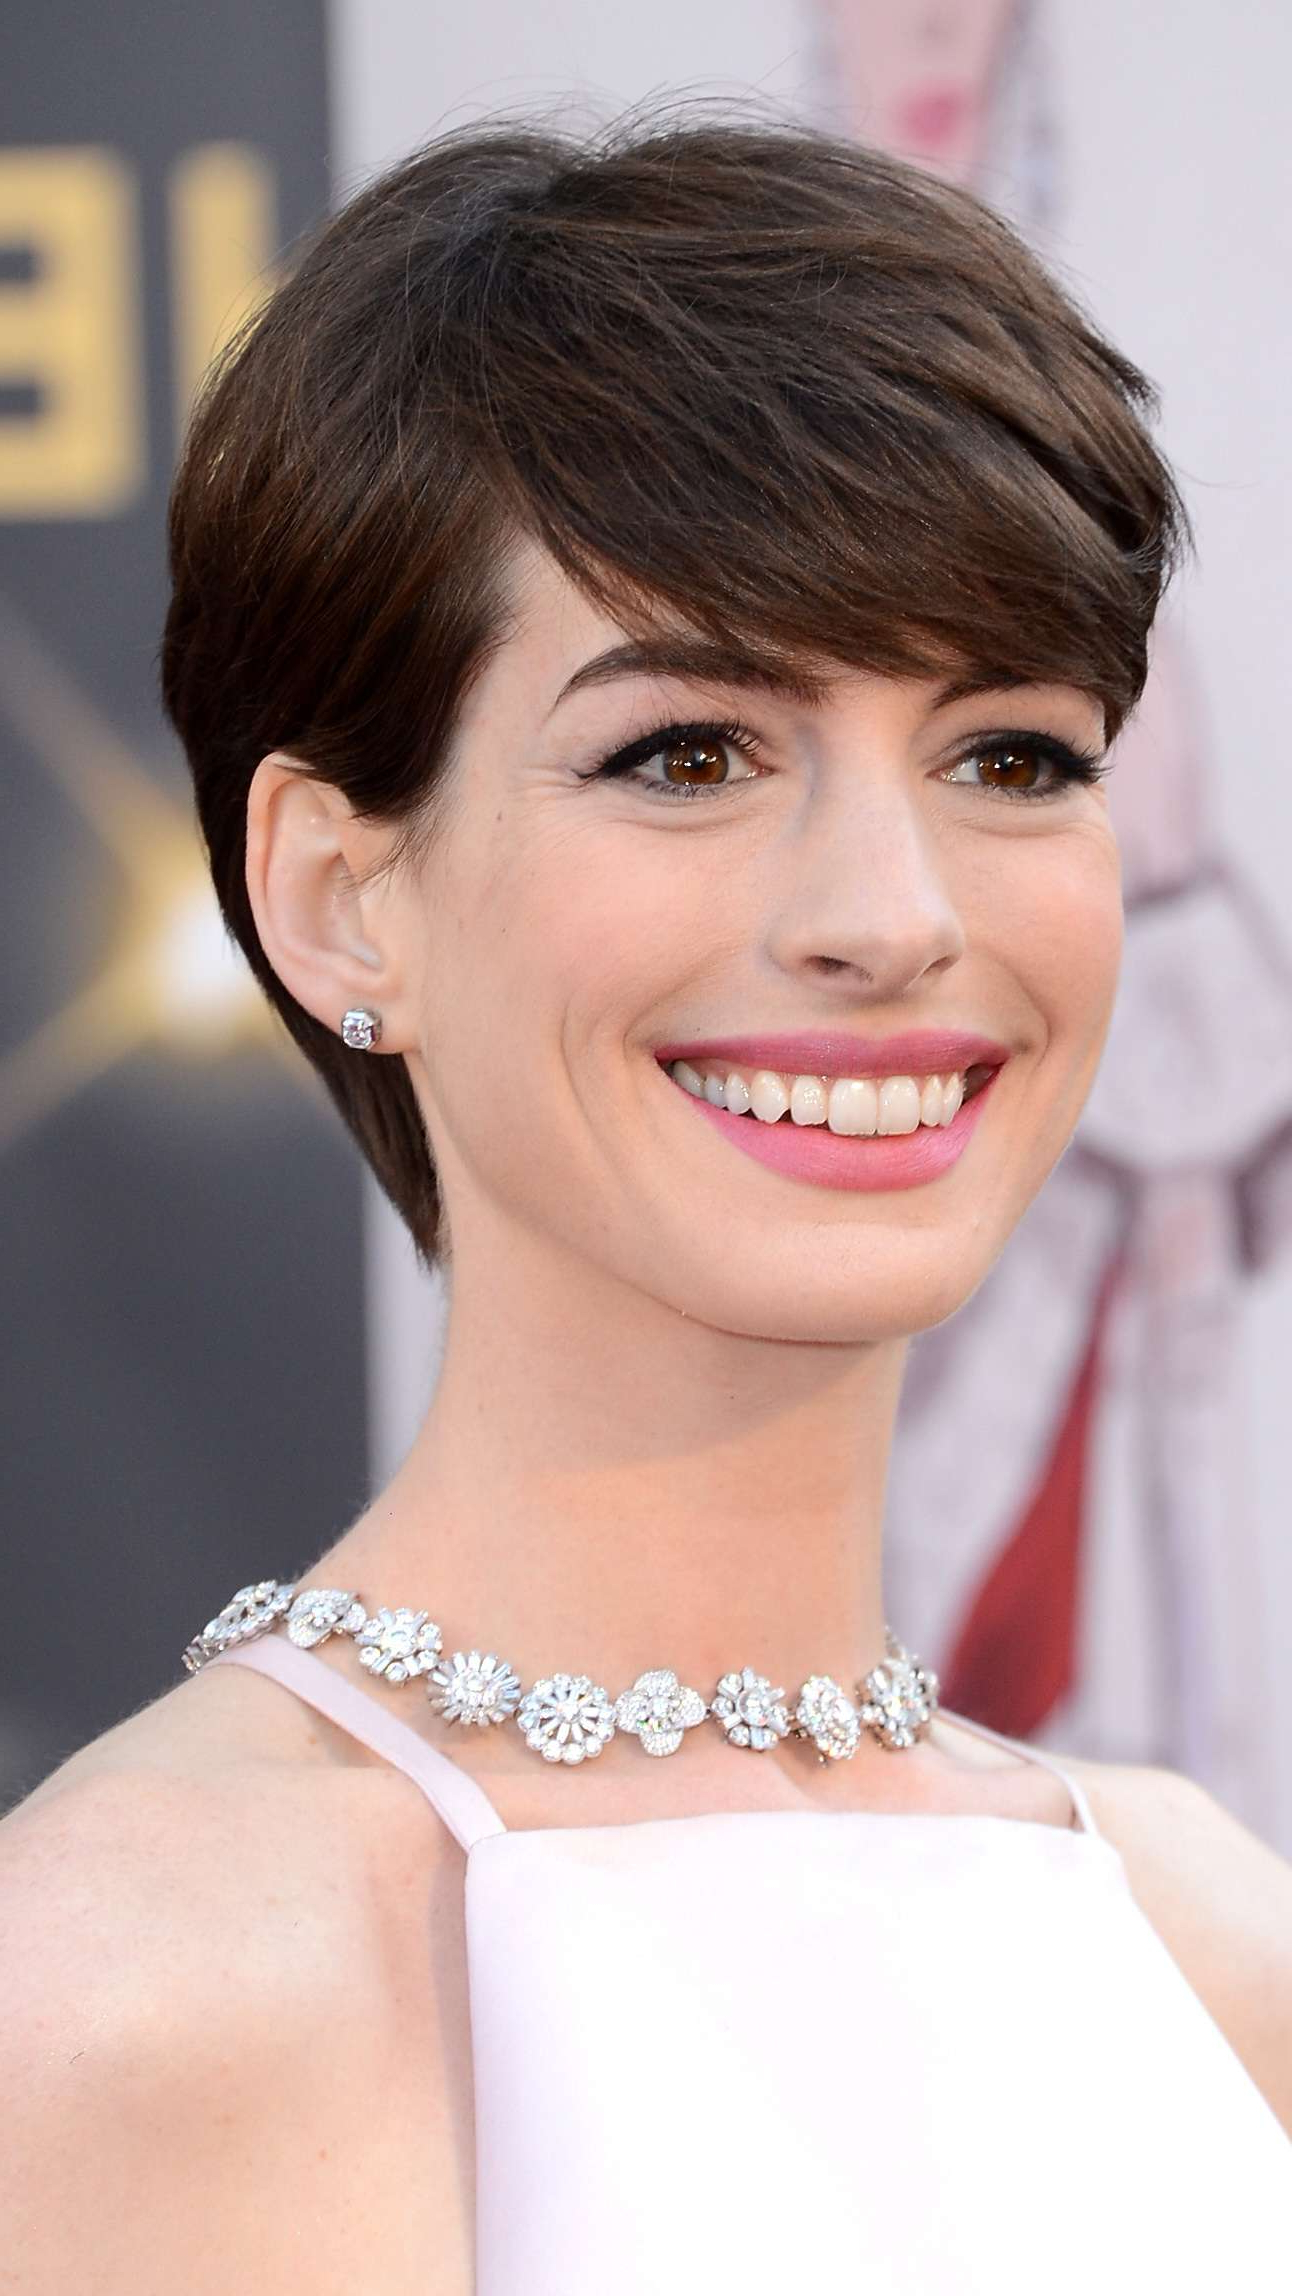 22 Inspiring Short Haircuts For Every Face Shape Within Short Haircuts For Square Jaws (View 4 of 25)